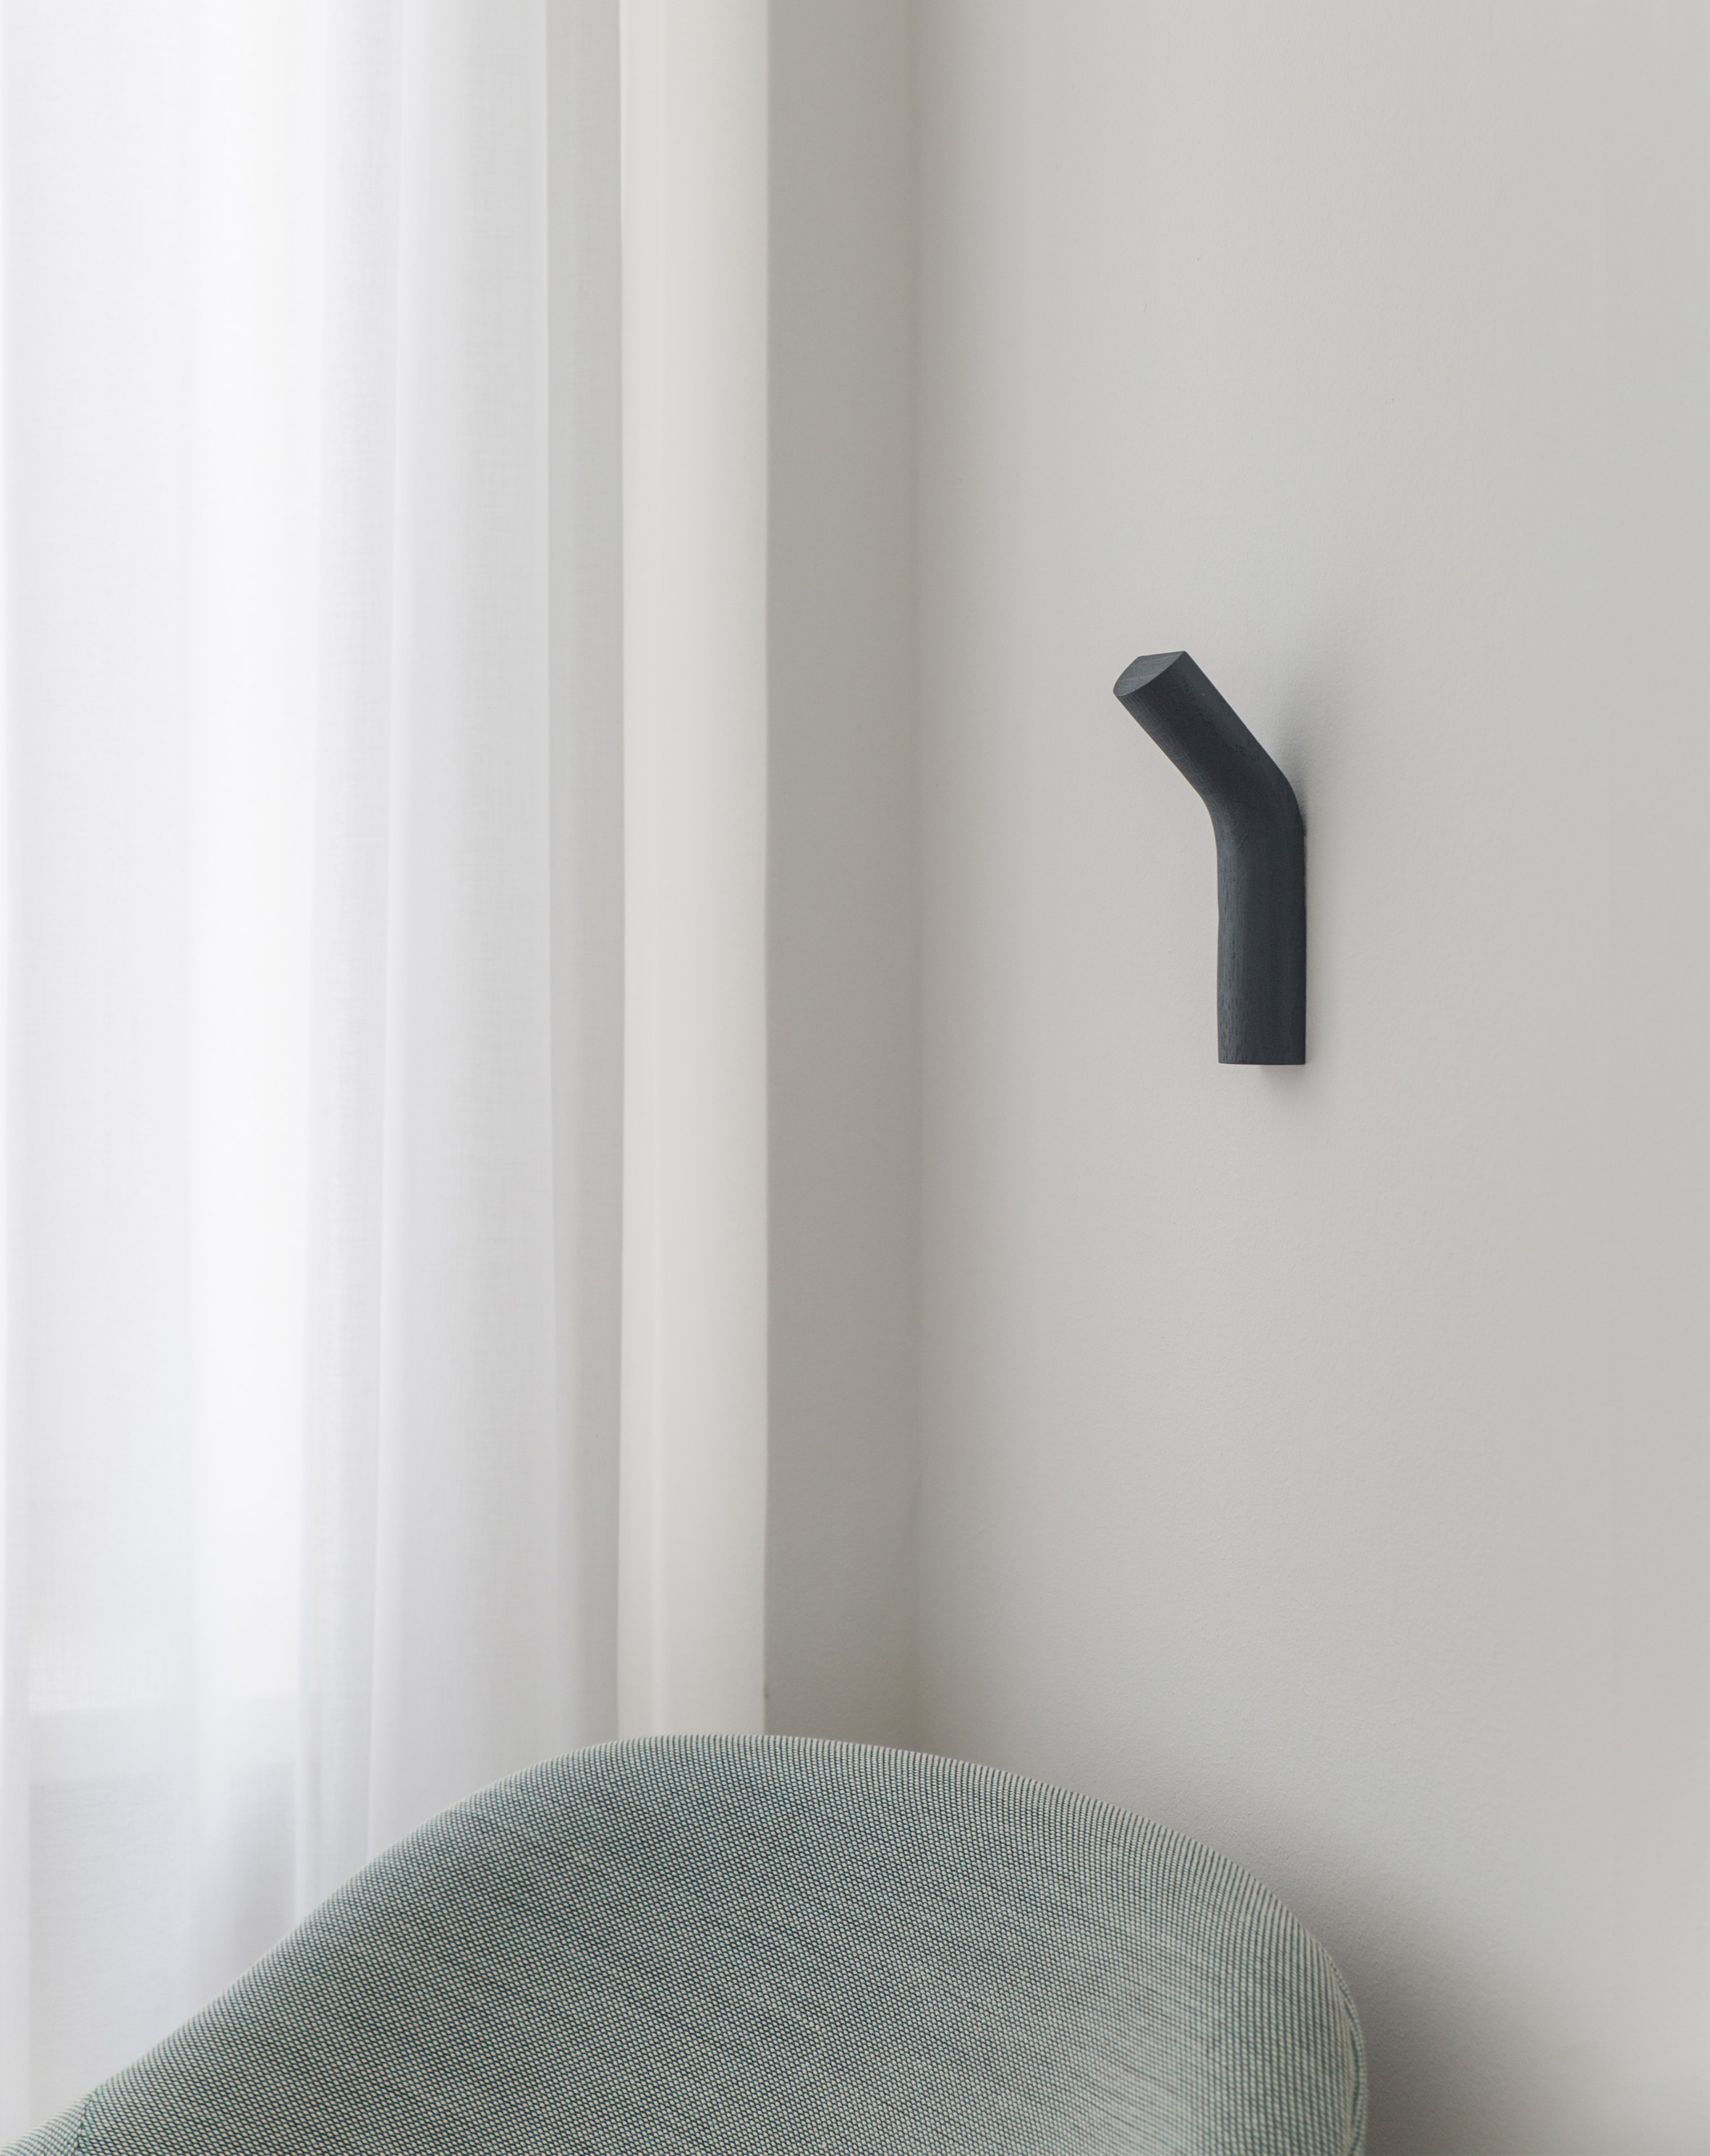 Jonas Wagell adds to minimal product line for From the Bay